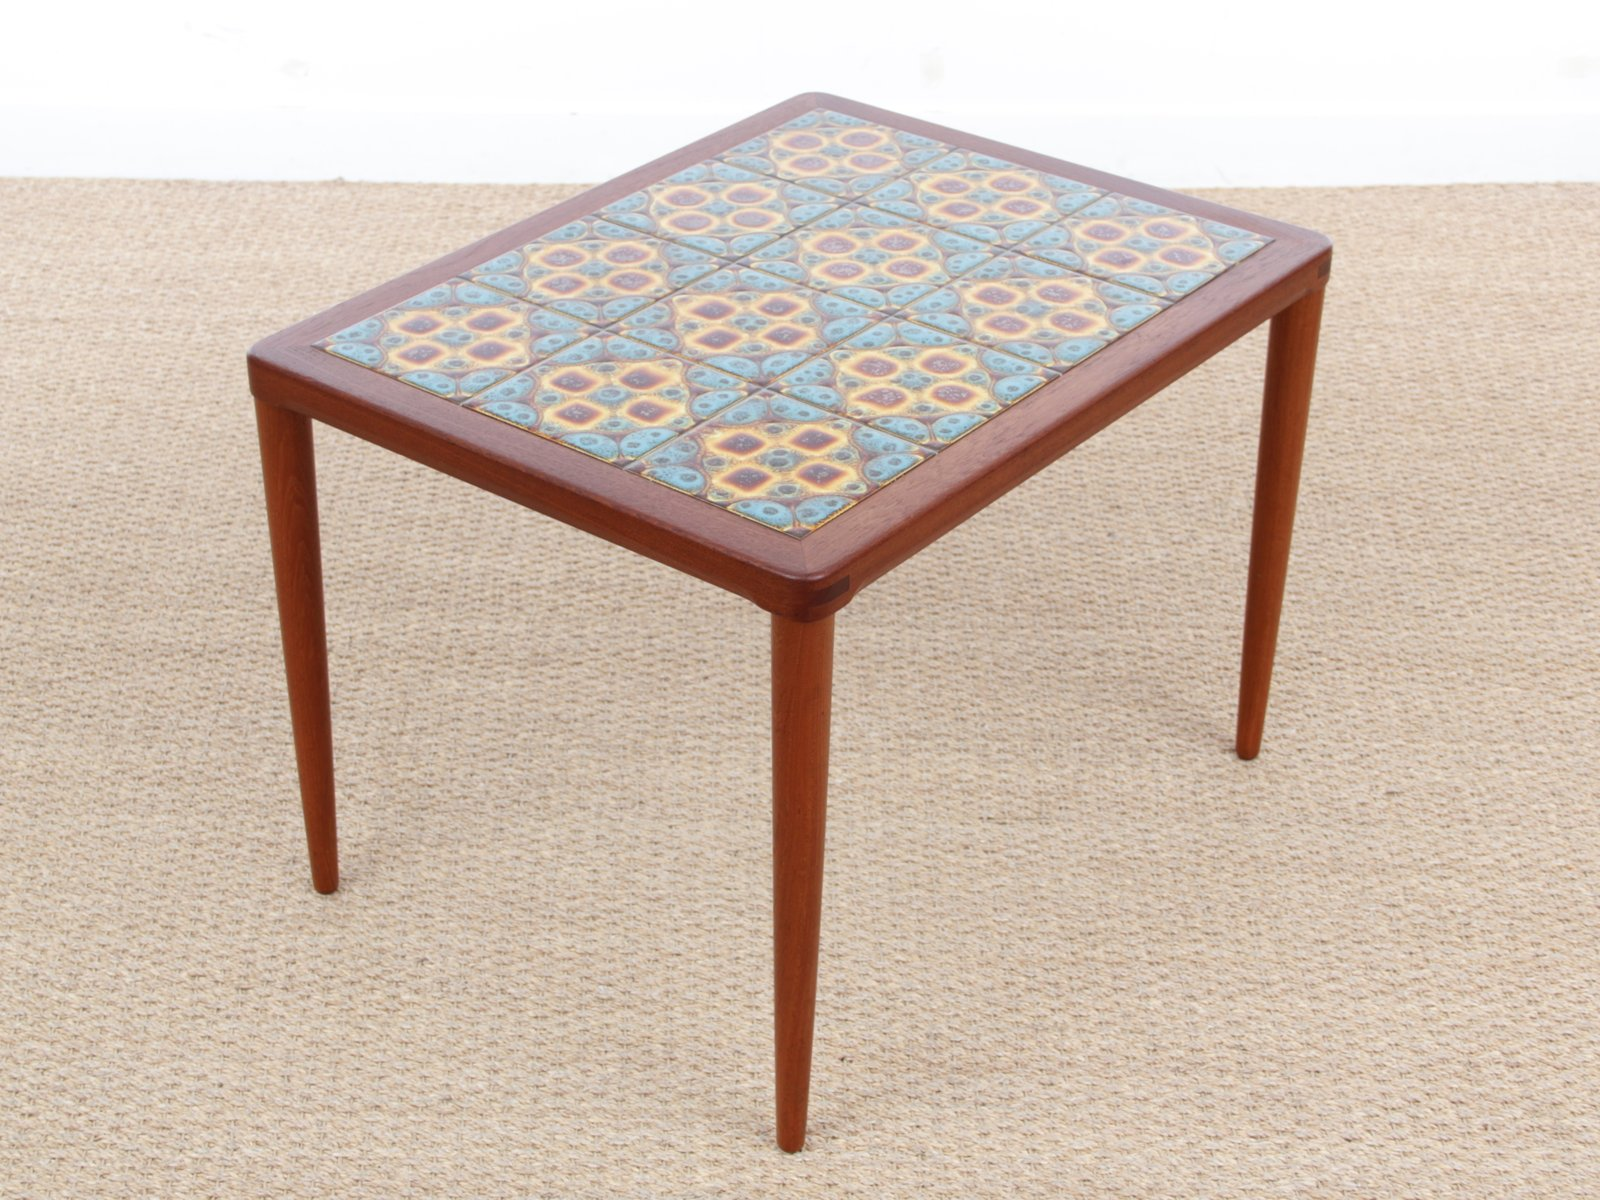 Ceramic Tile Coffee Table Image collections Tile Flooring Design